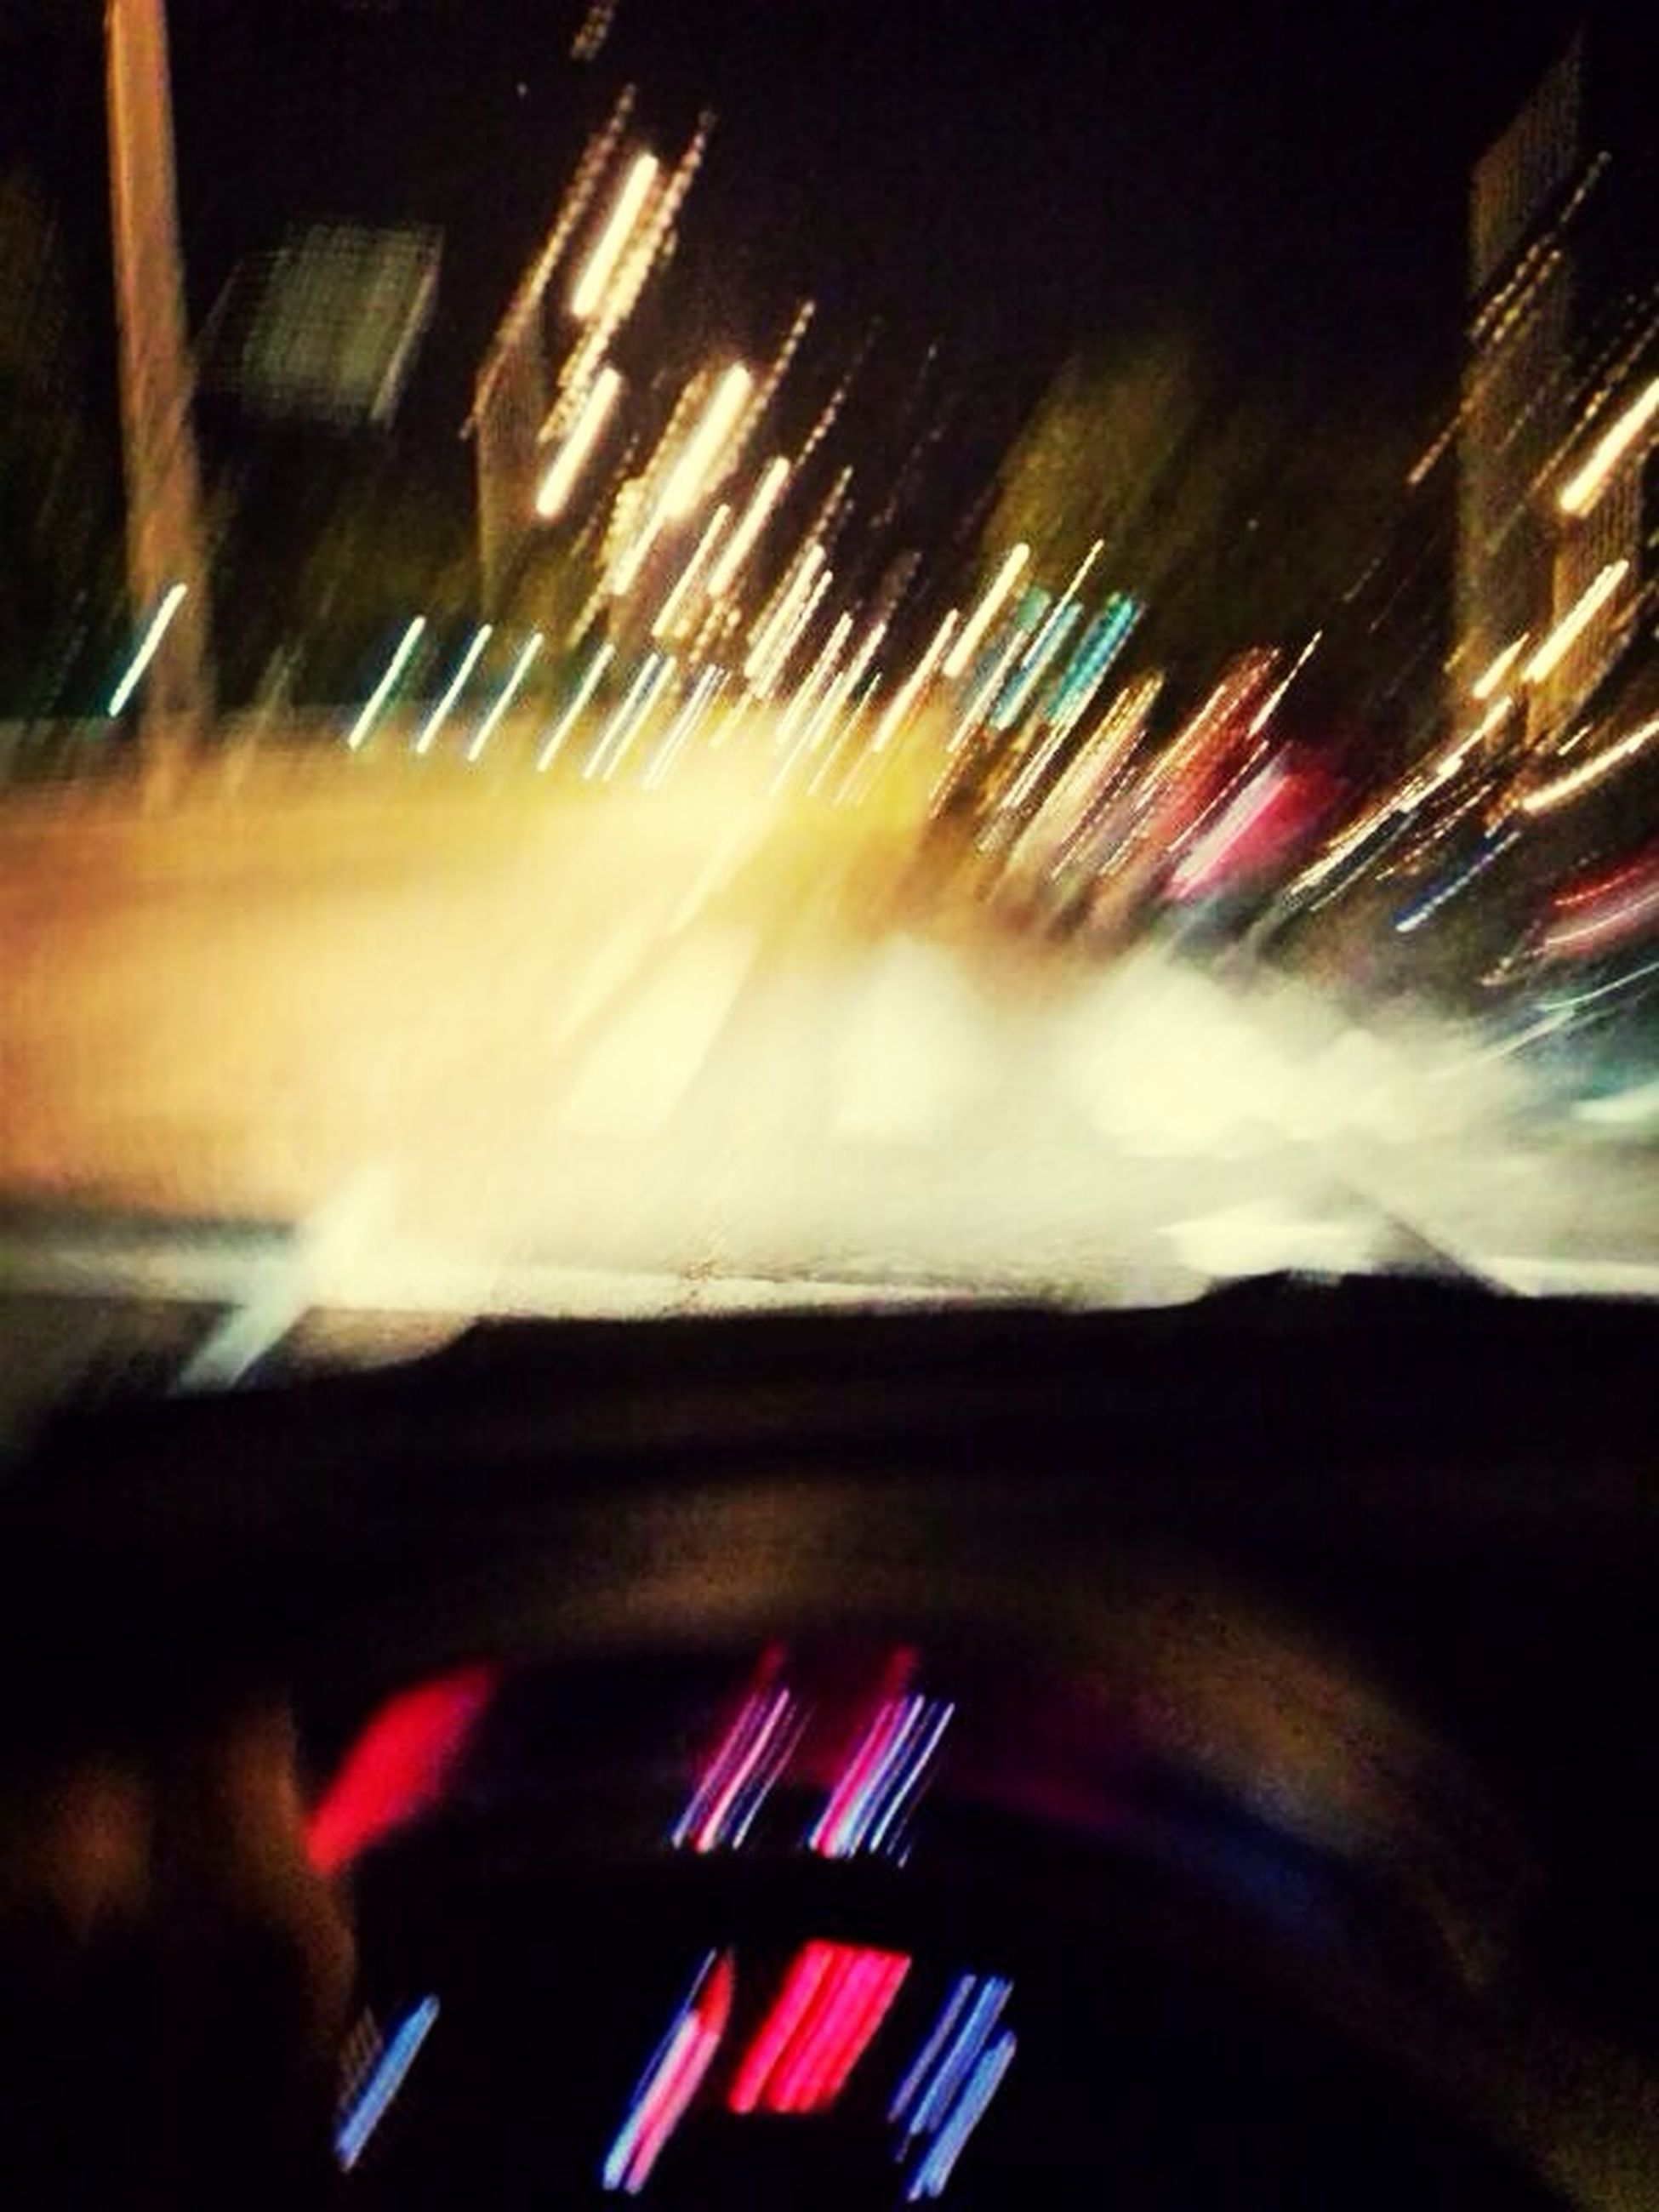 night, indoors, illuminated, blurred motion, transportation, motion, speed, mode of transport, arts culture and entertainment, long exposure, selective focus, multi colored, land vehicle, music, close-up, no people, light - natural phenomenon, high angle view, car, light trail